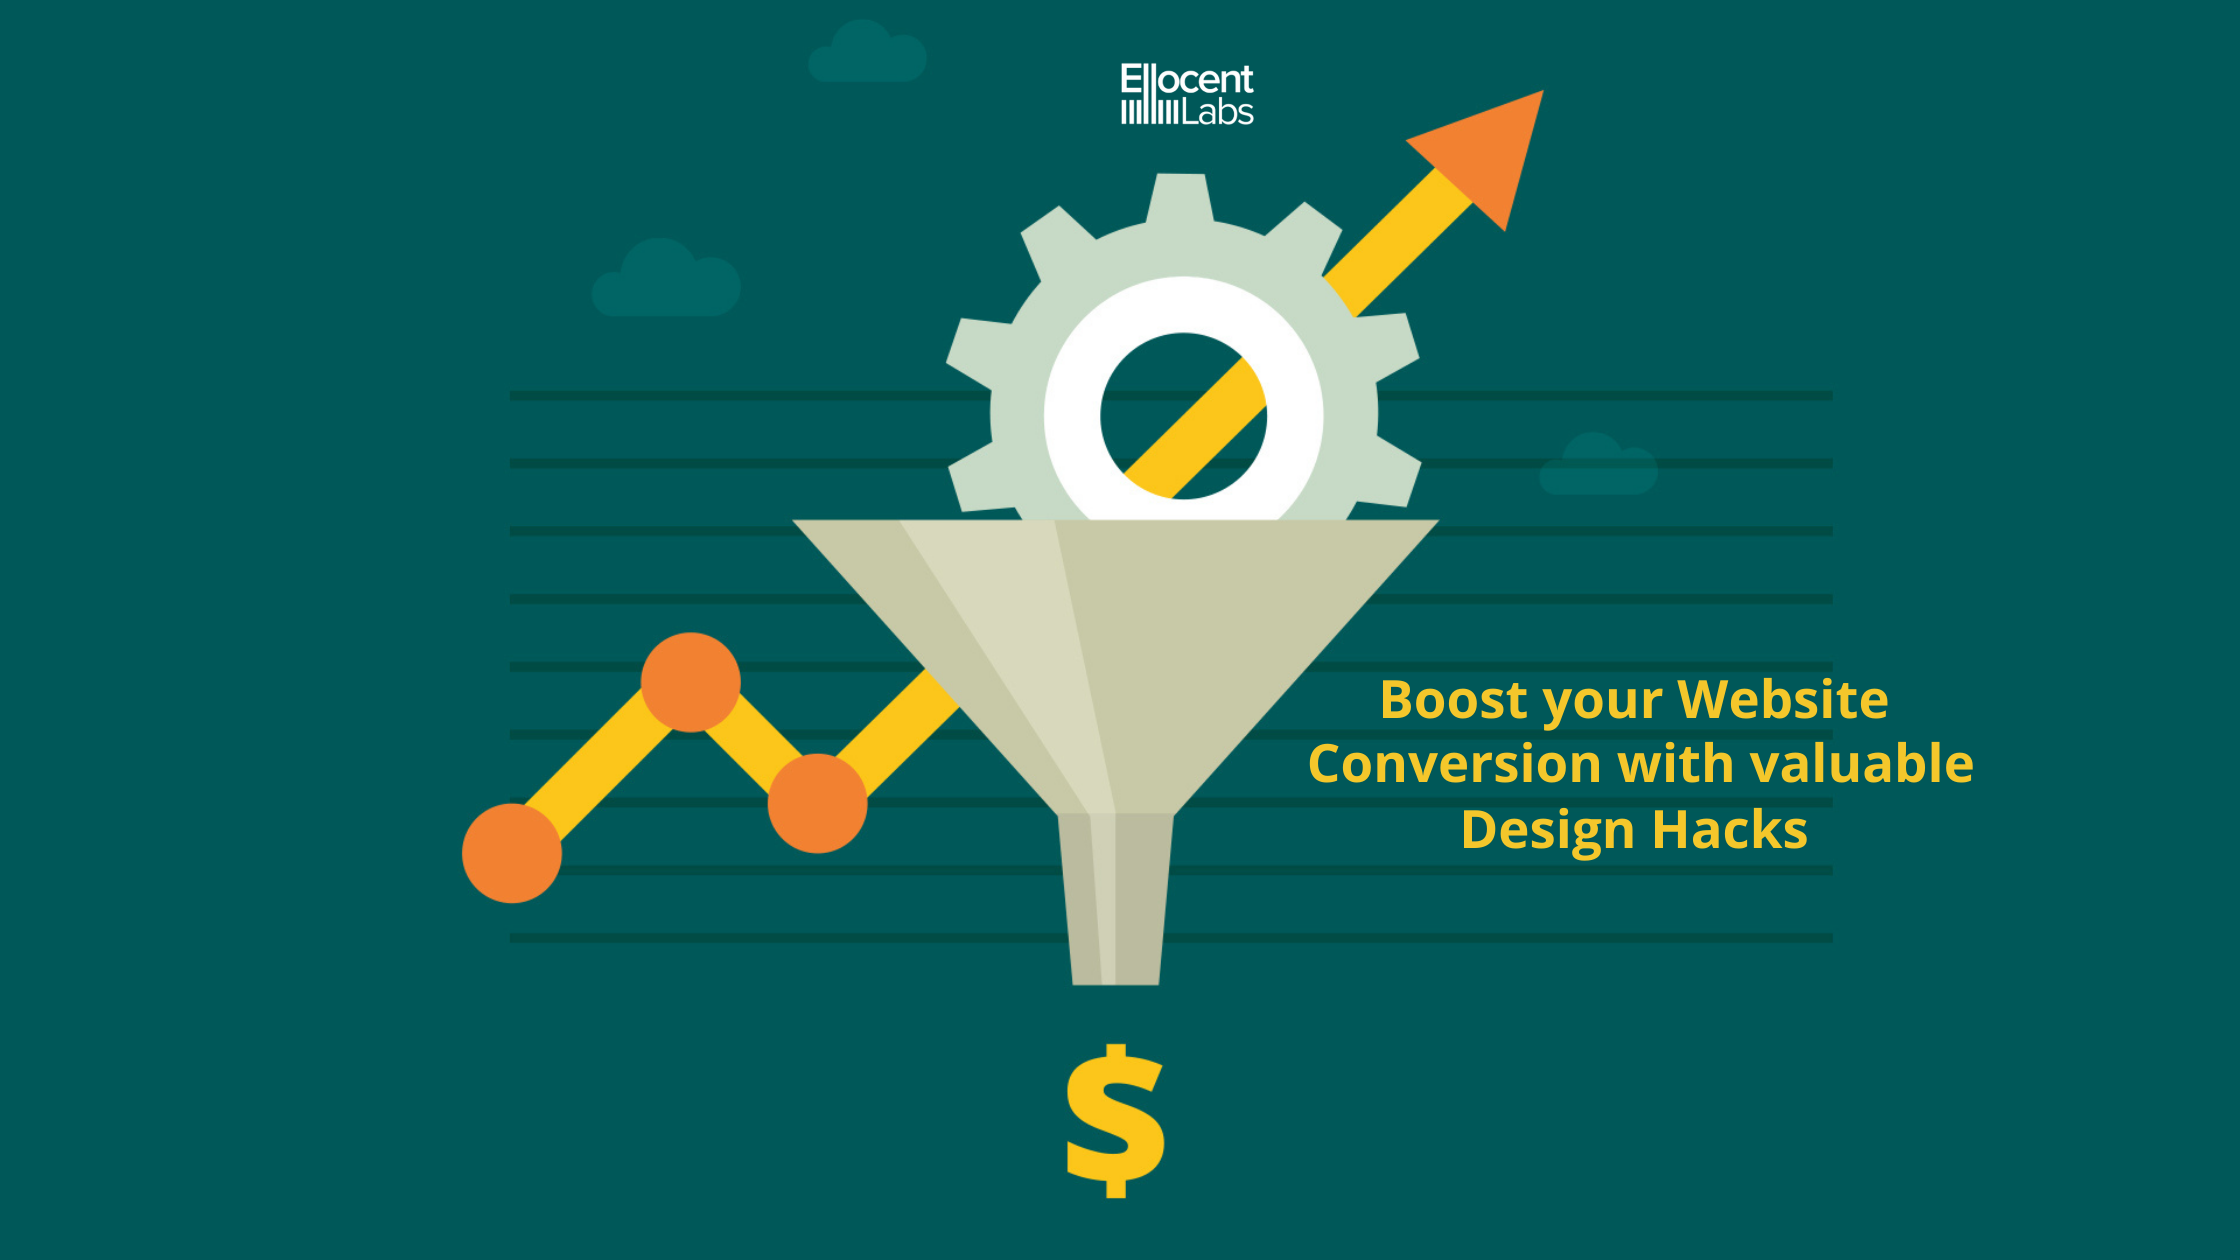 Boost your Website Conversion with valuable Design Hacks